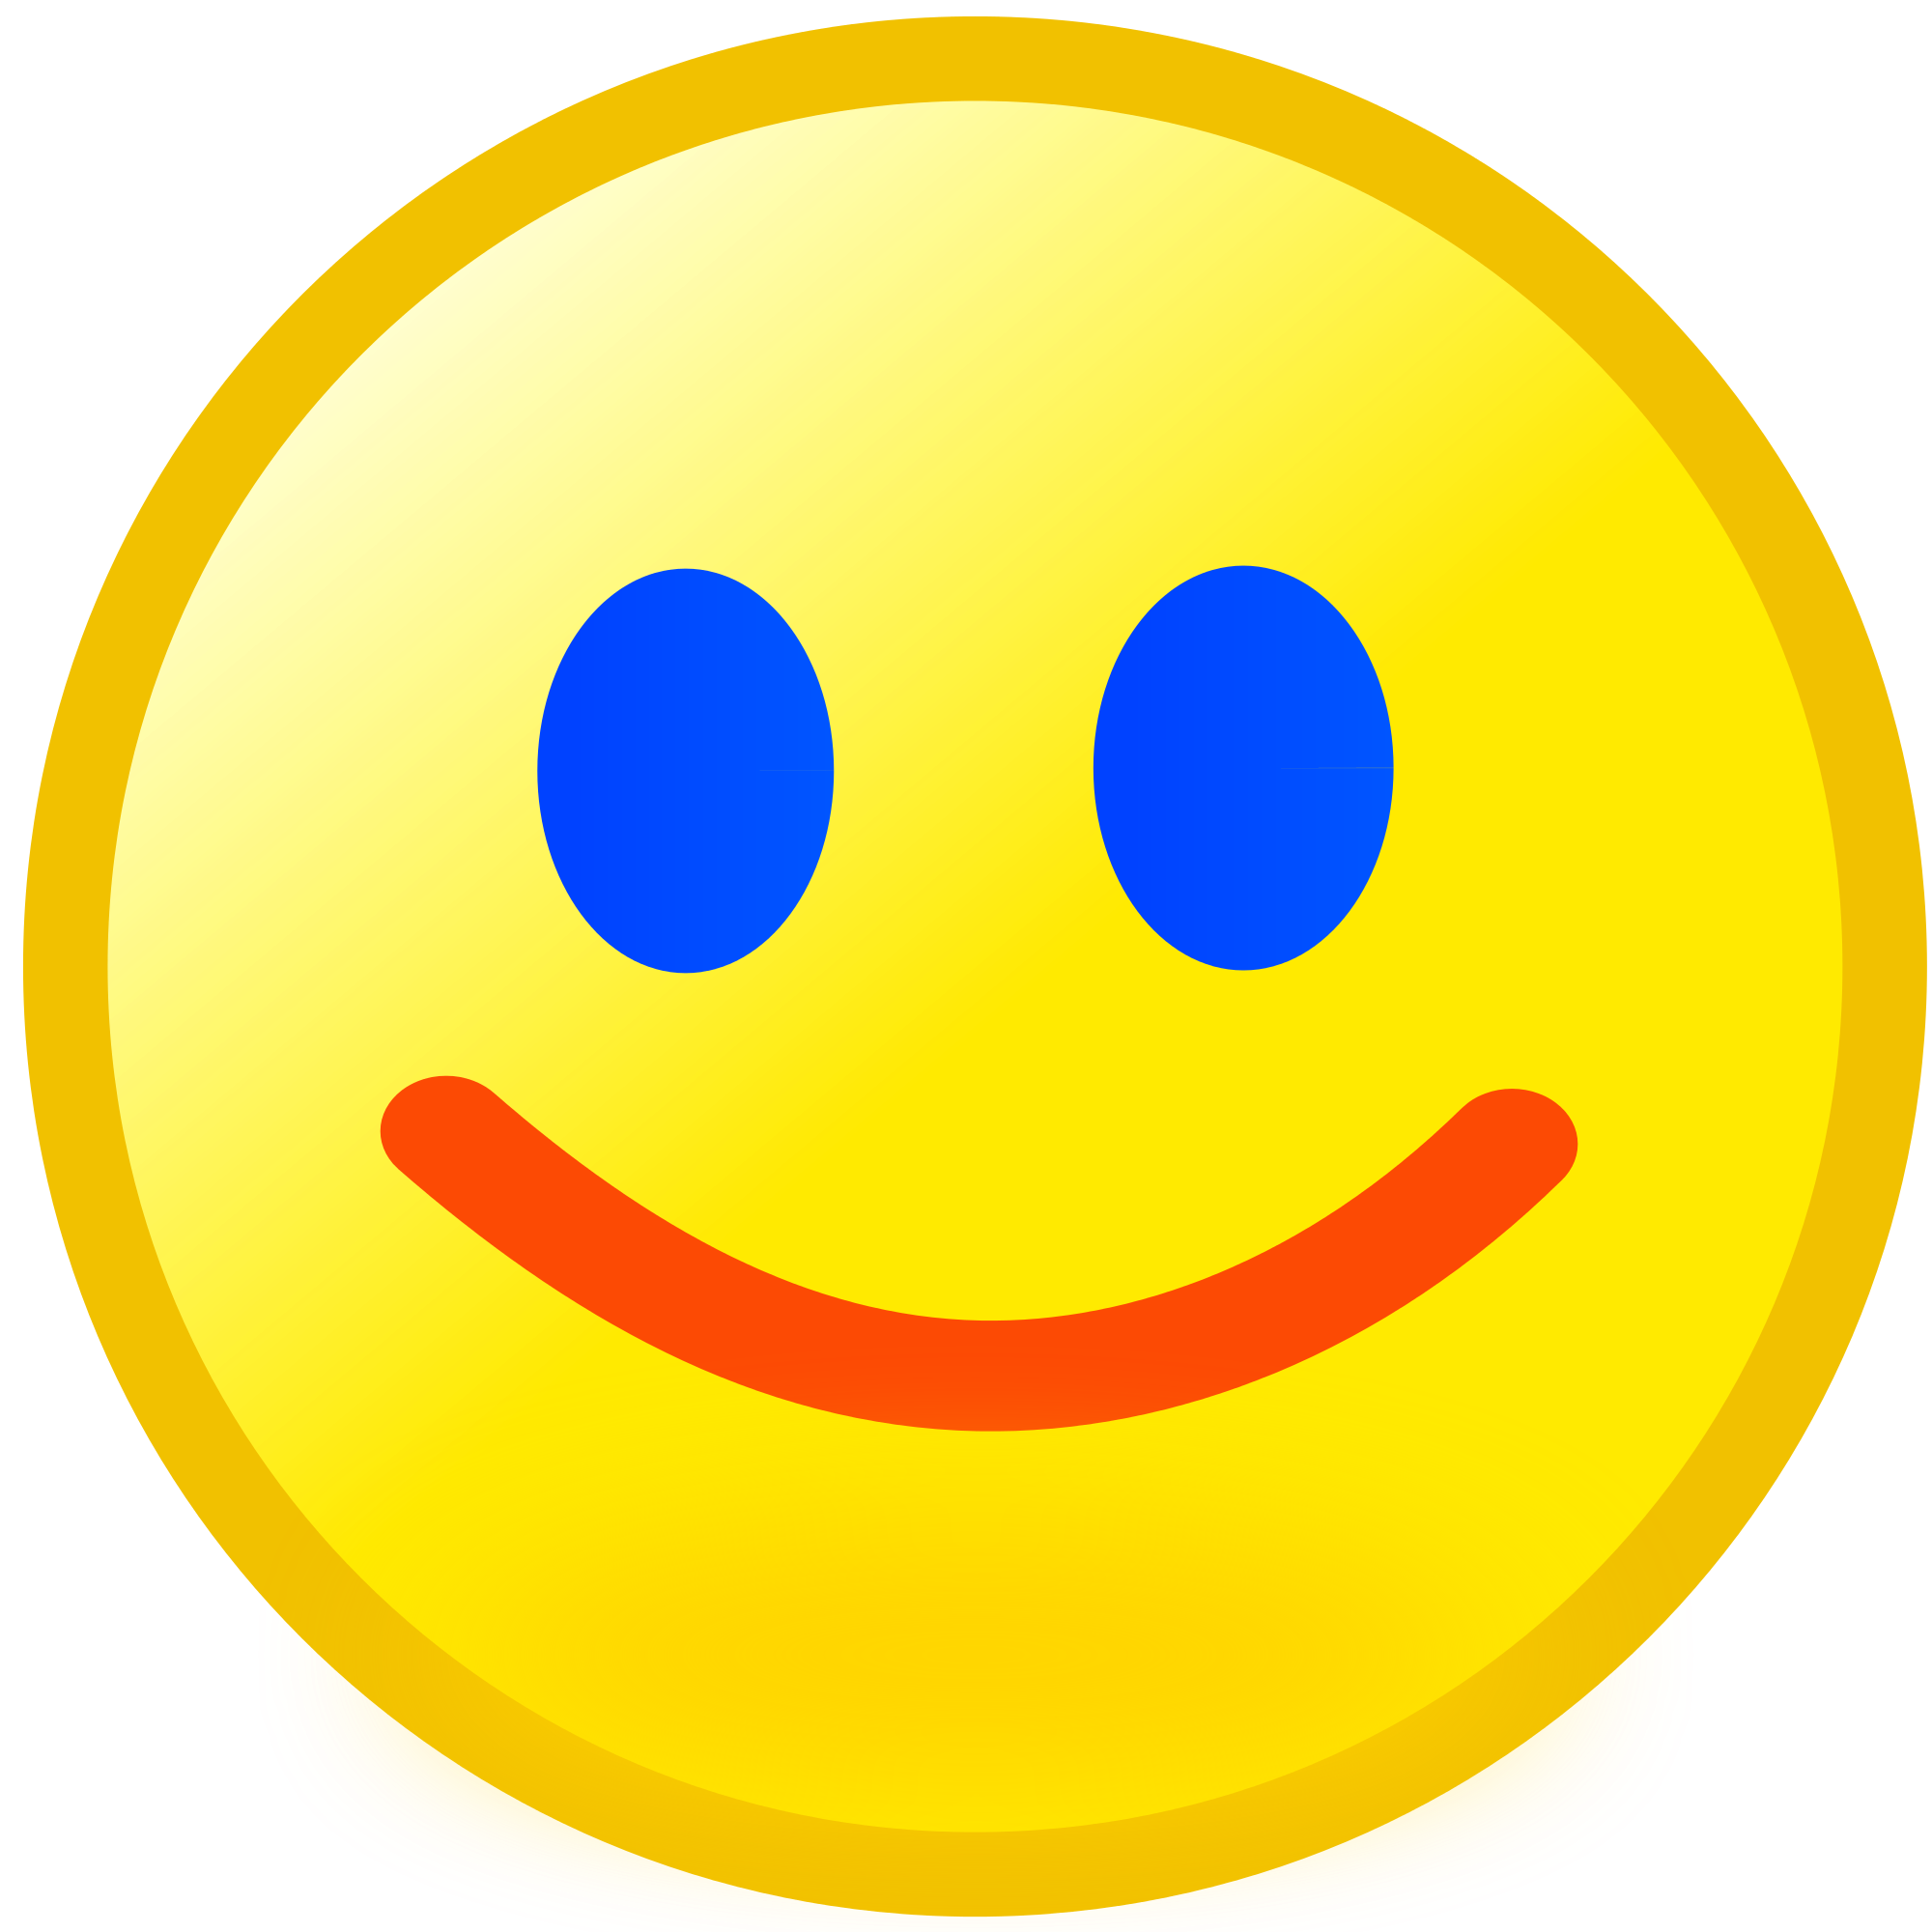 Smile PNG Transparent Image